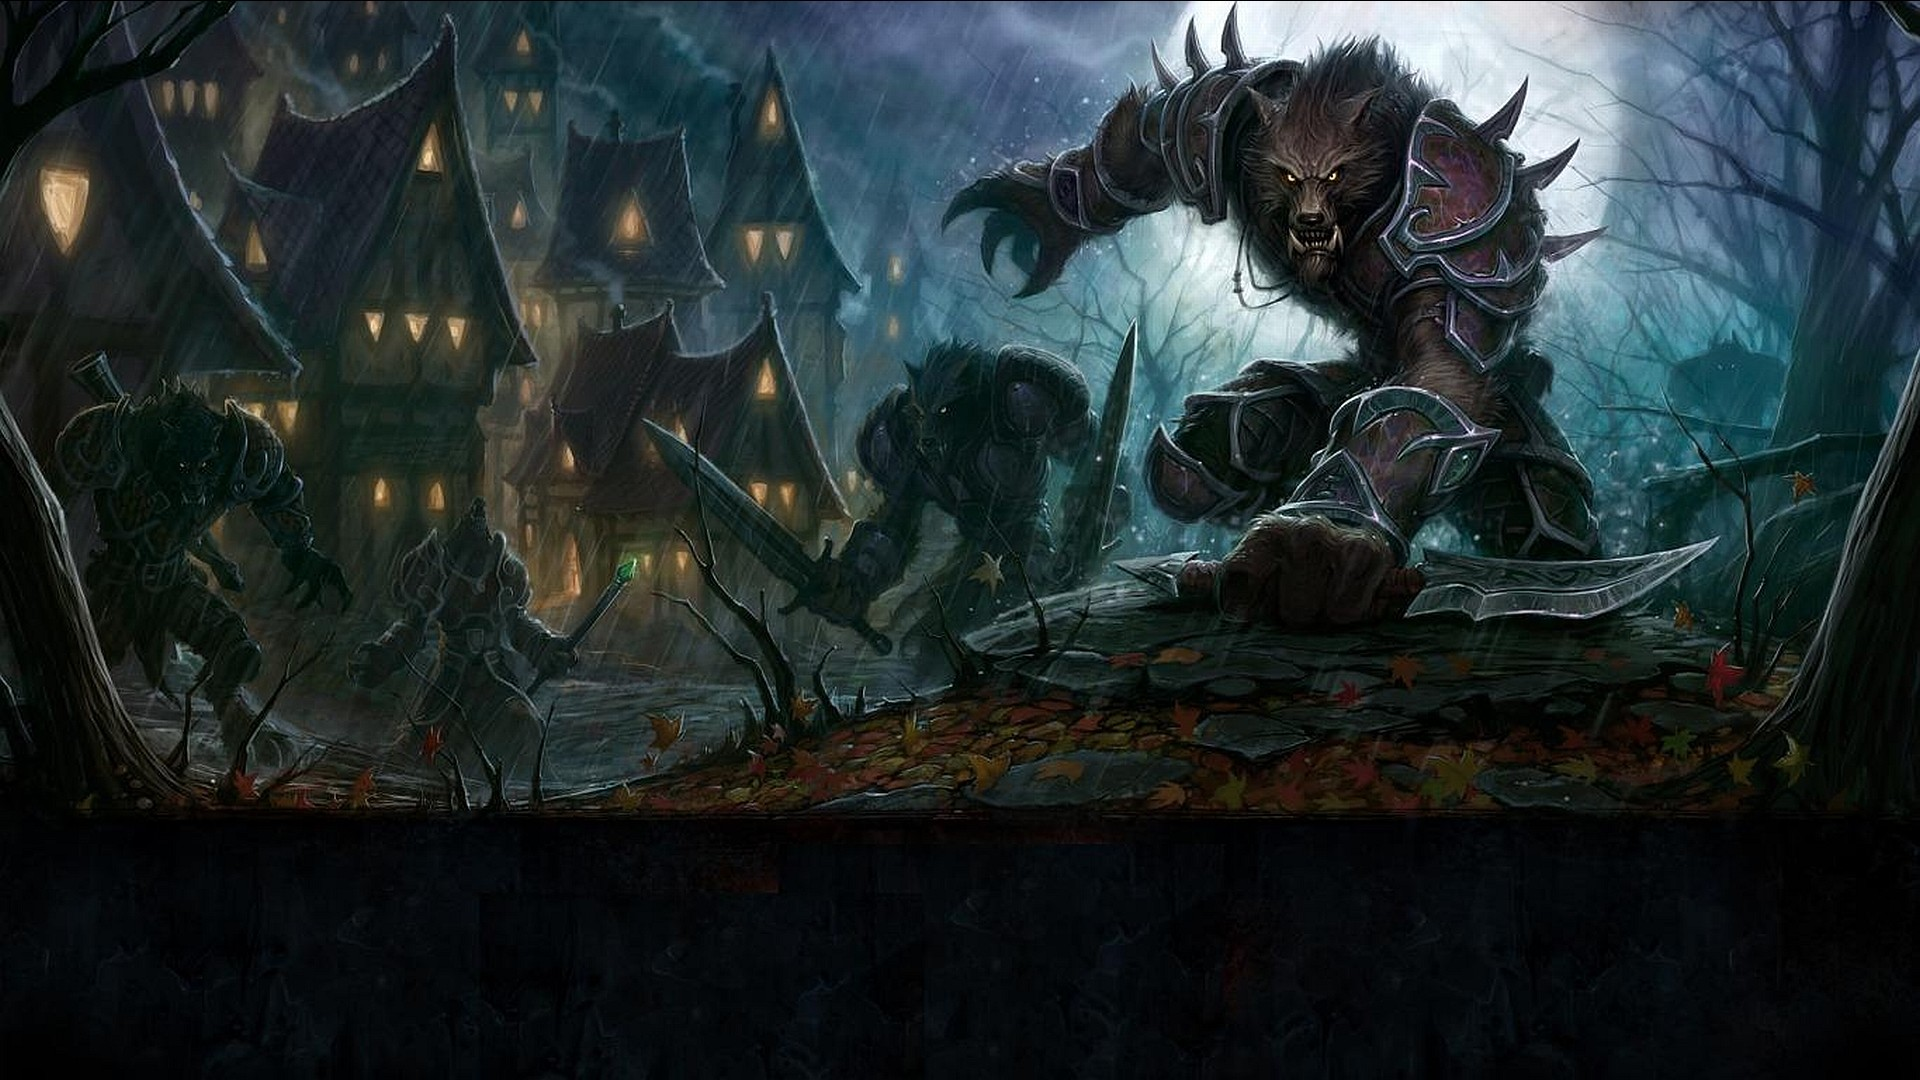 werewolf images and wallpapers (74+ images)